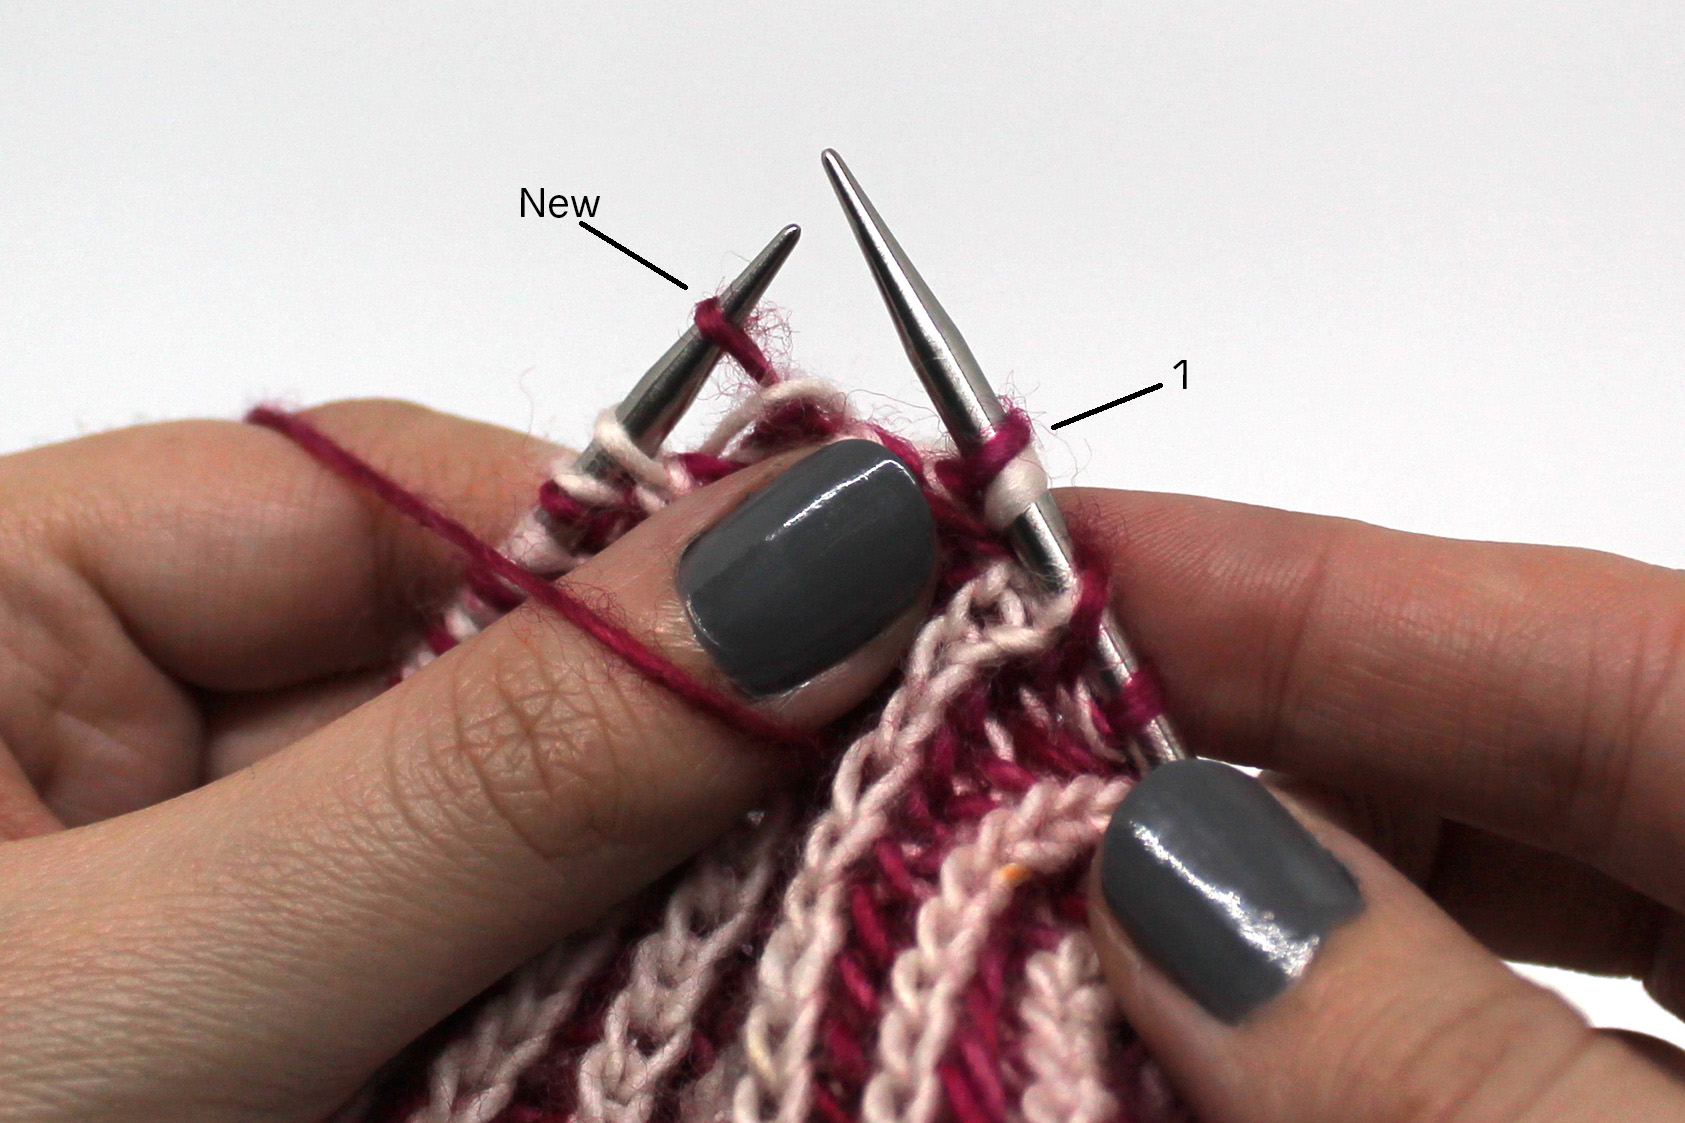 Pass stitch 3 over the new stitch and off the needle